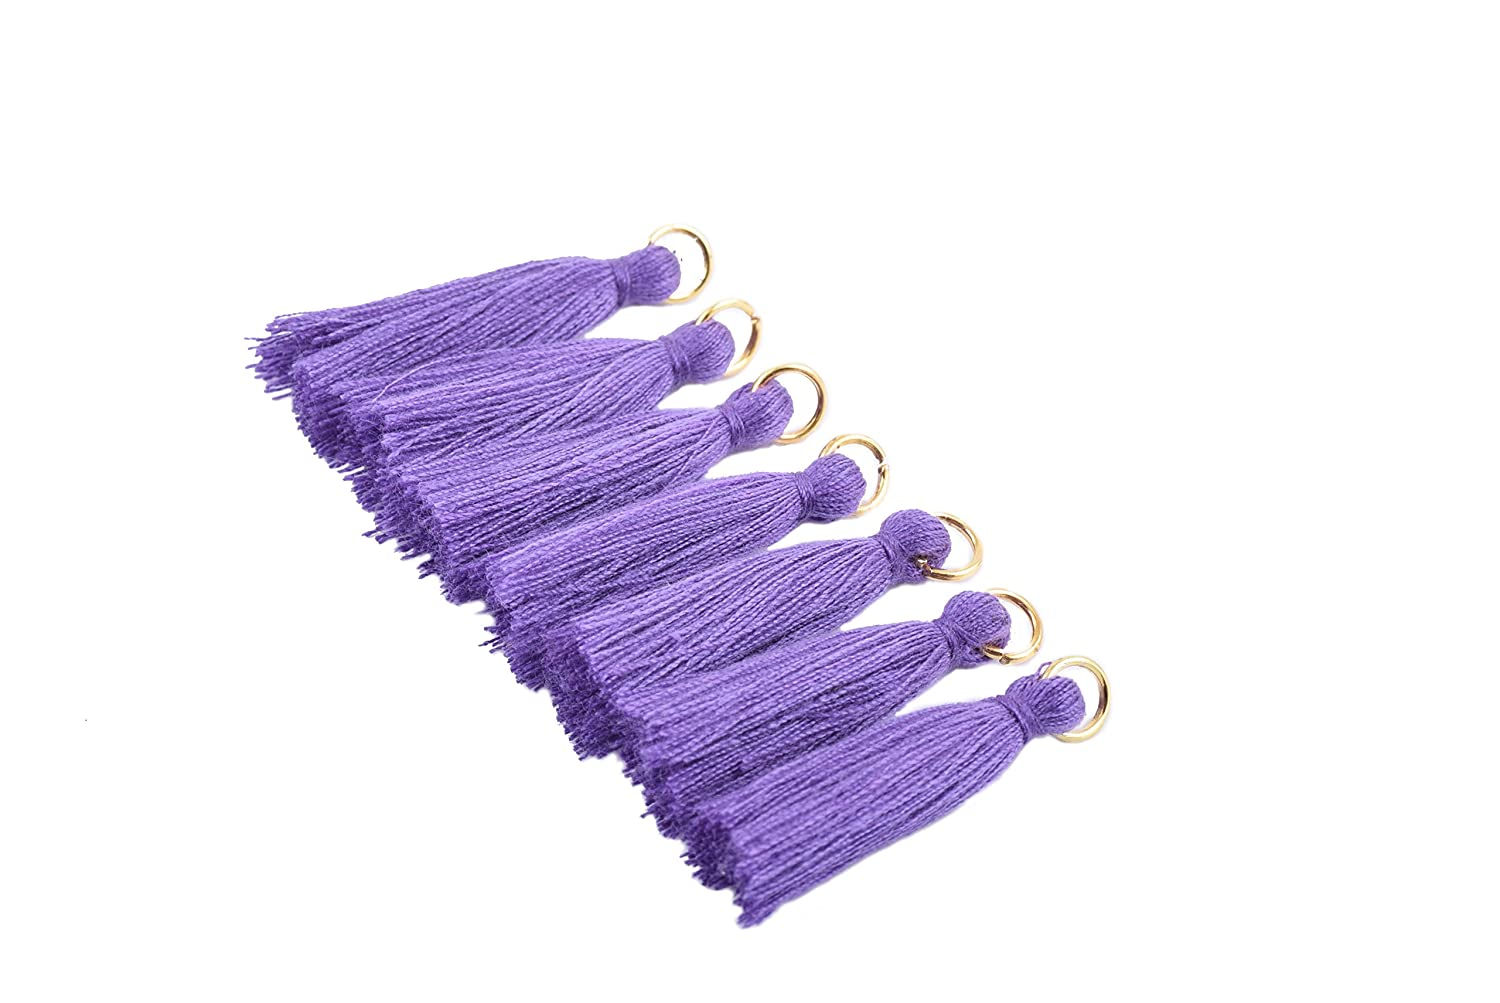 Soft Handmade Silky Tiny Craft Tassels With Golden Jump Ring for DIY Projects Peach 3.5cm KONMAY 50PCS 1.4